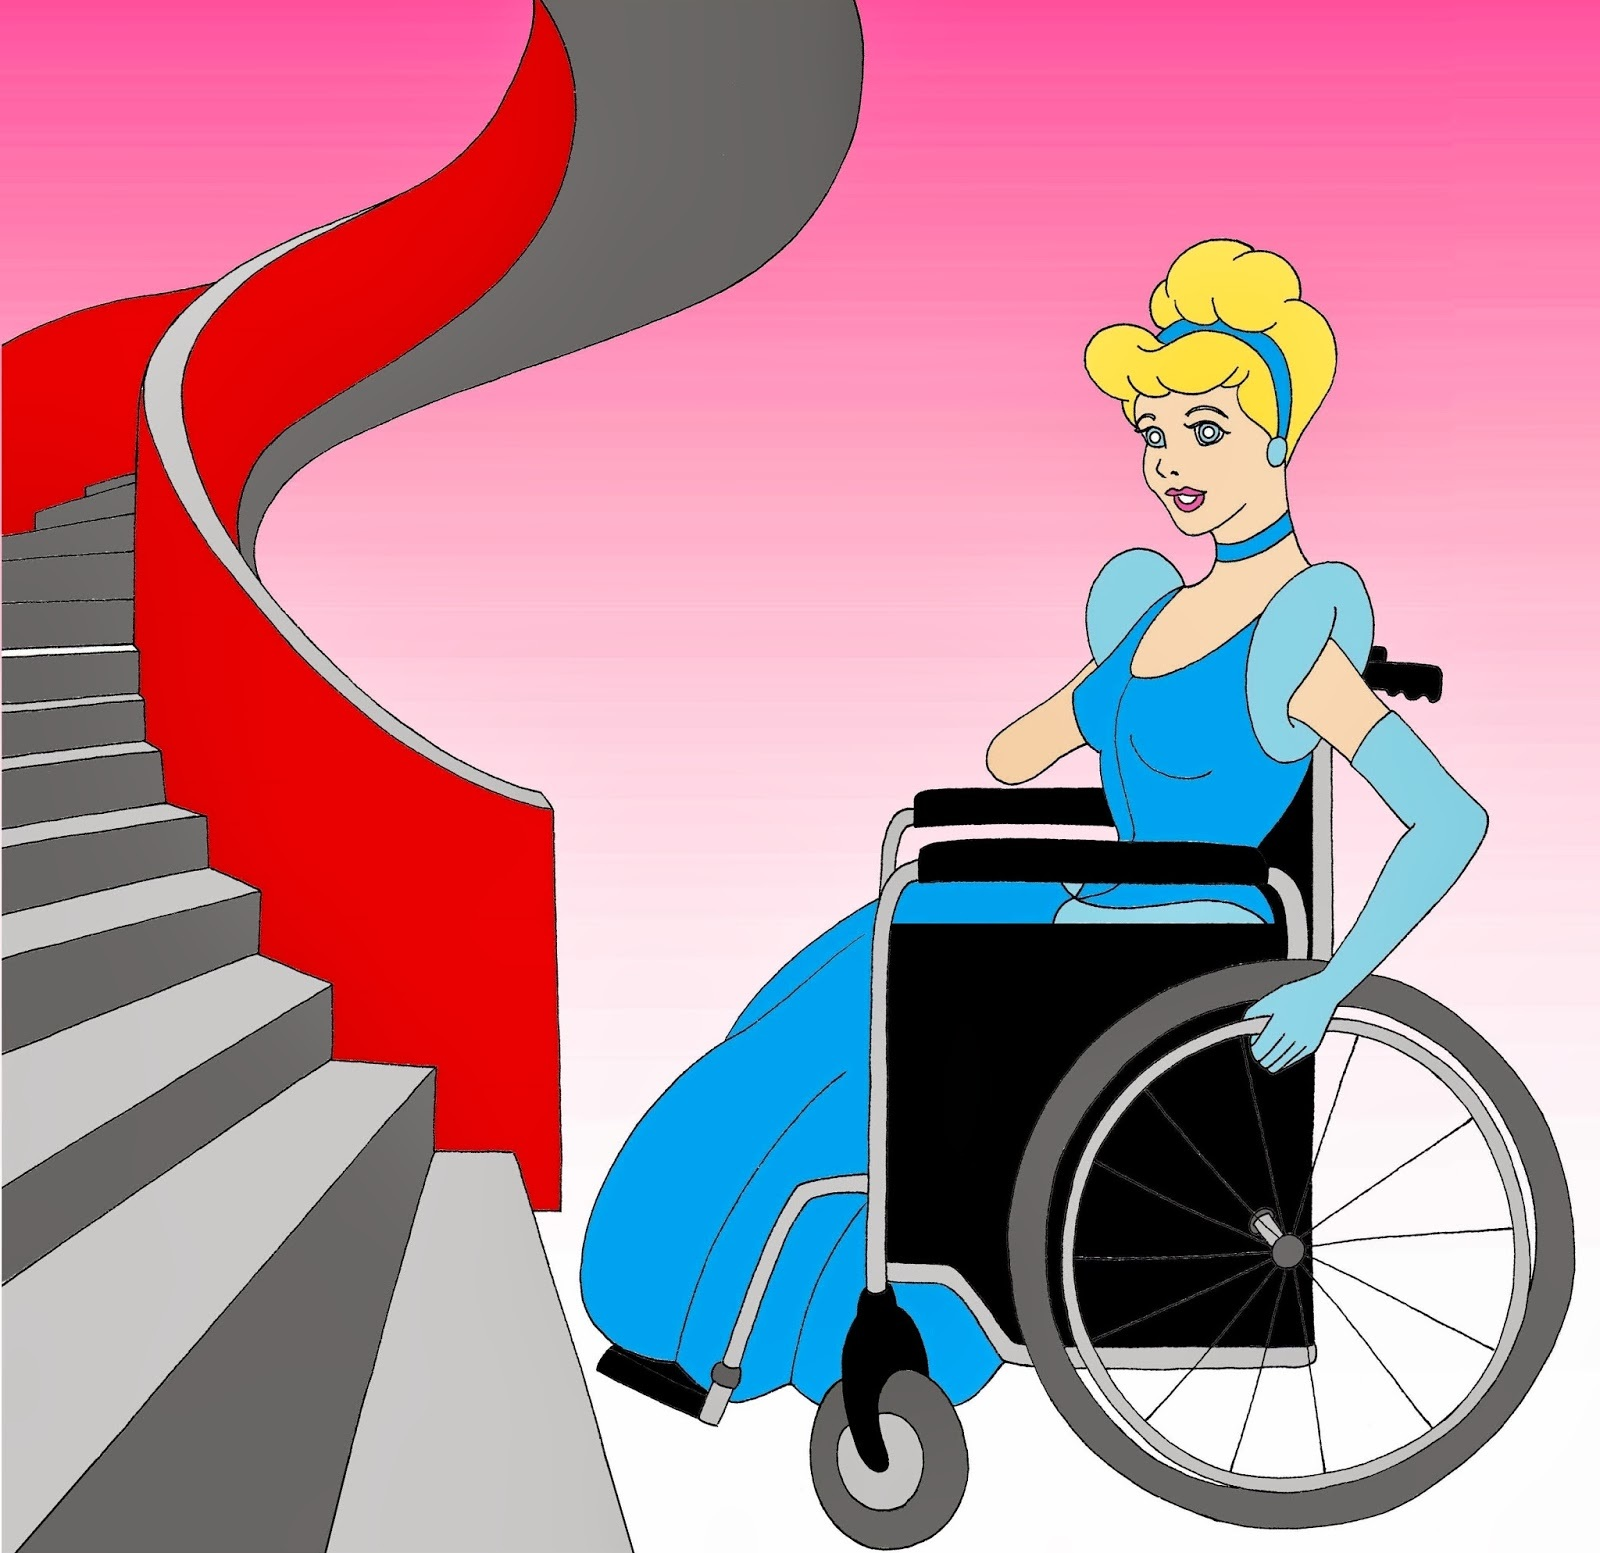 Disabled Disney Princess Cinderella All access for all  Disabled Disability Equal Rights Wellchair Health Art Campaign ADV Cartoon Painting Portrait Illustration Sketch Humor Chic by aleXsandro Palombo